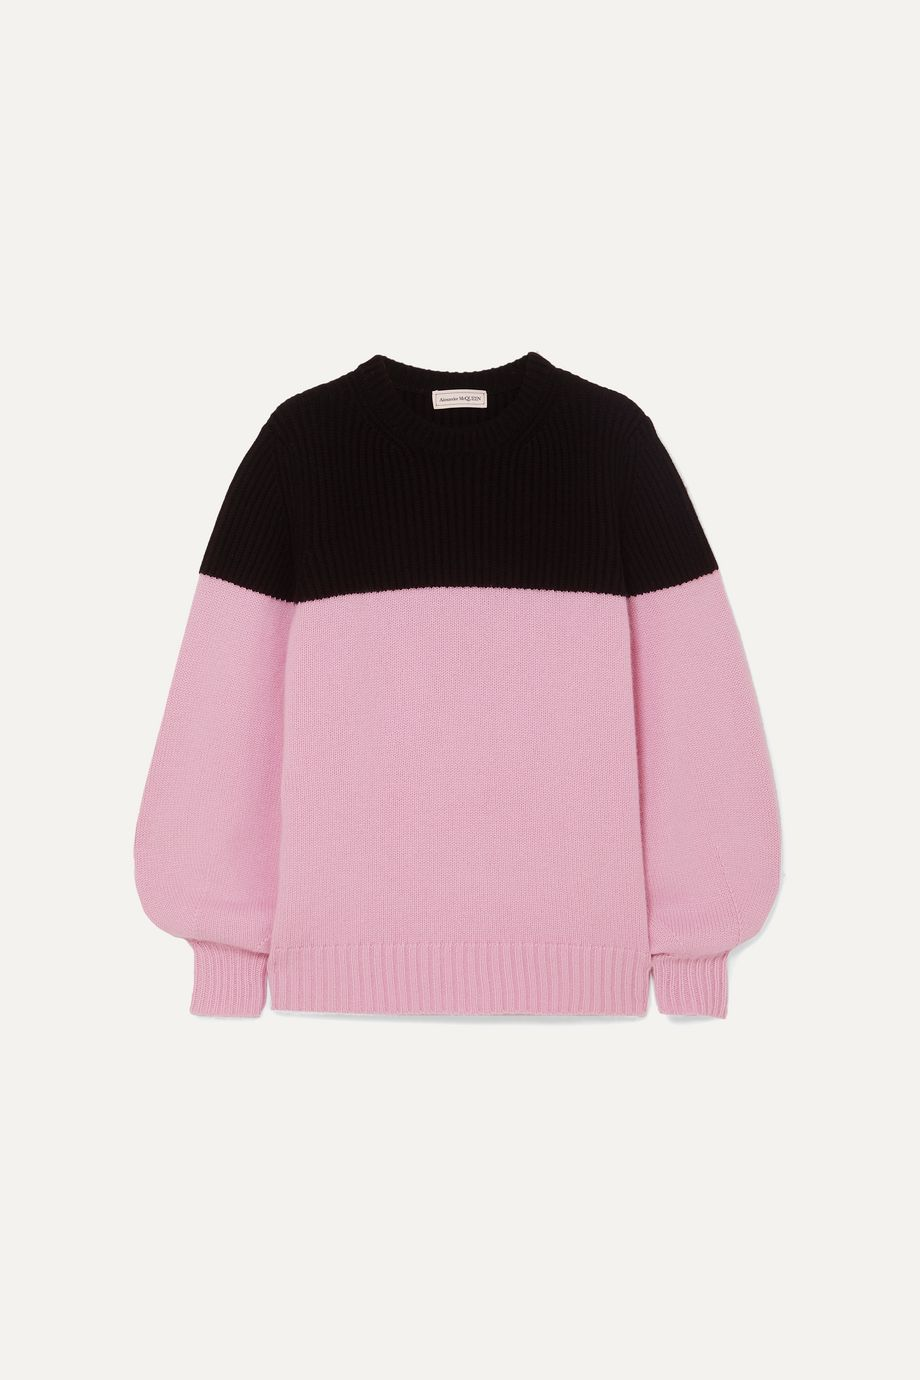 Alexander McQueen Two-tone ribbed cashmere sweater